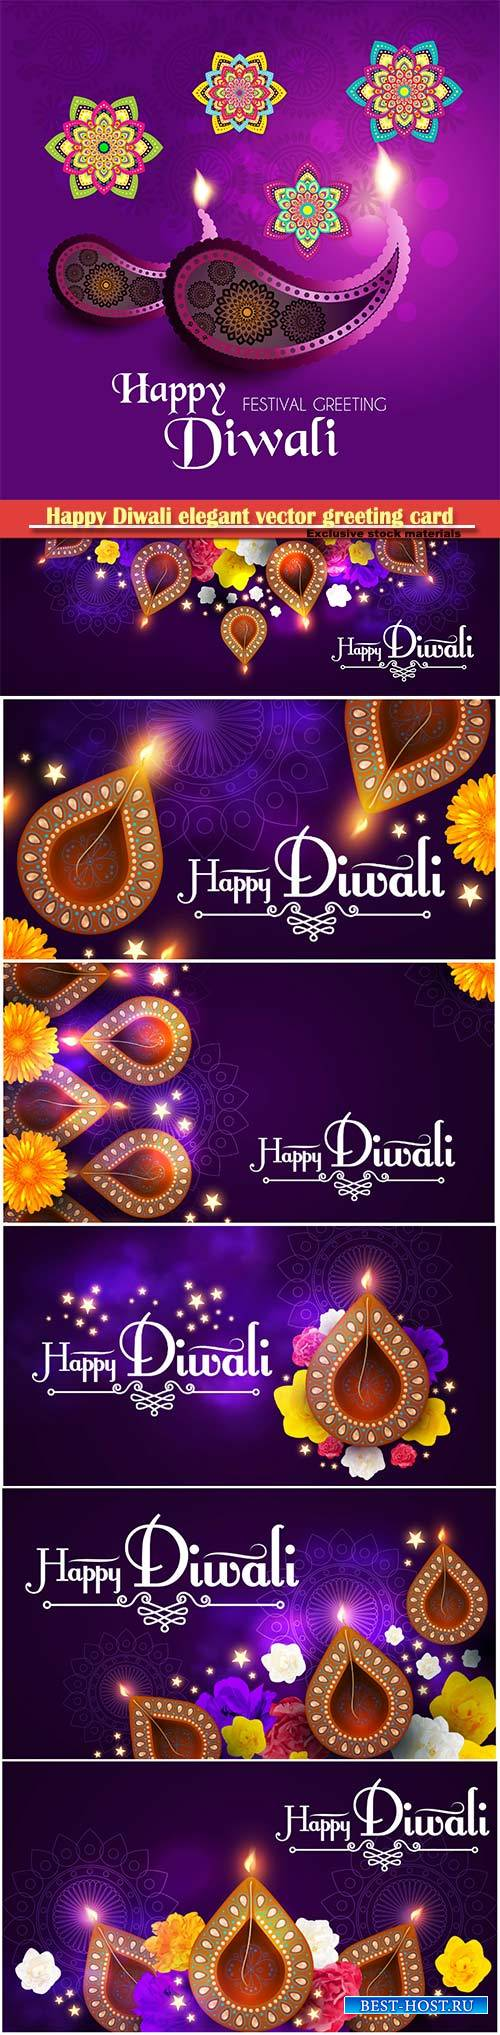 Happy Diwali elegant vector greeting card design